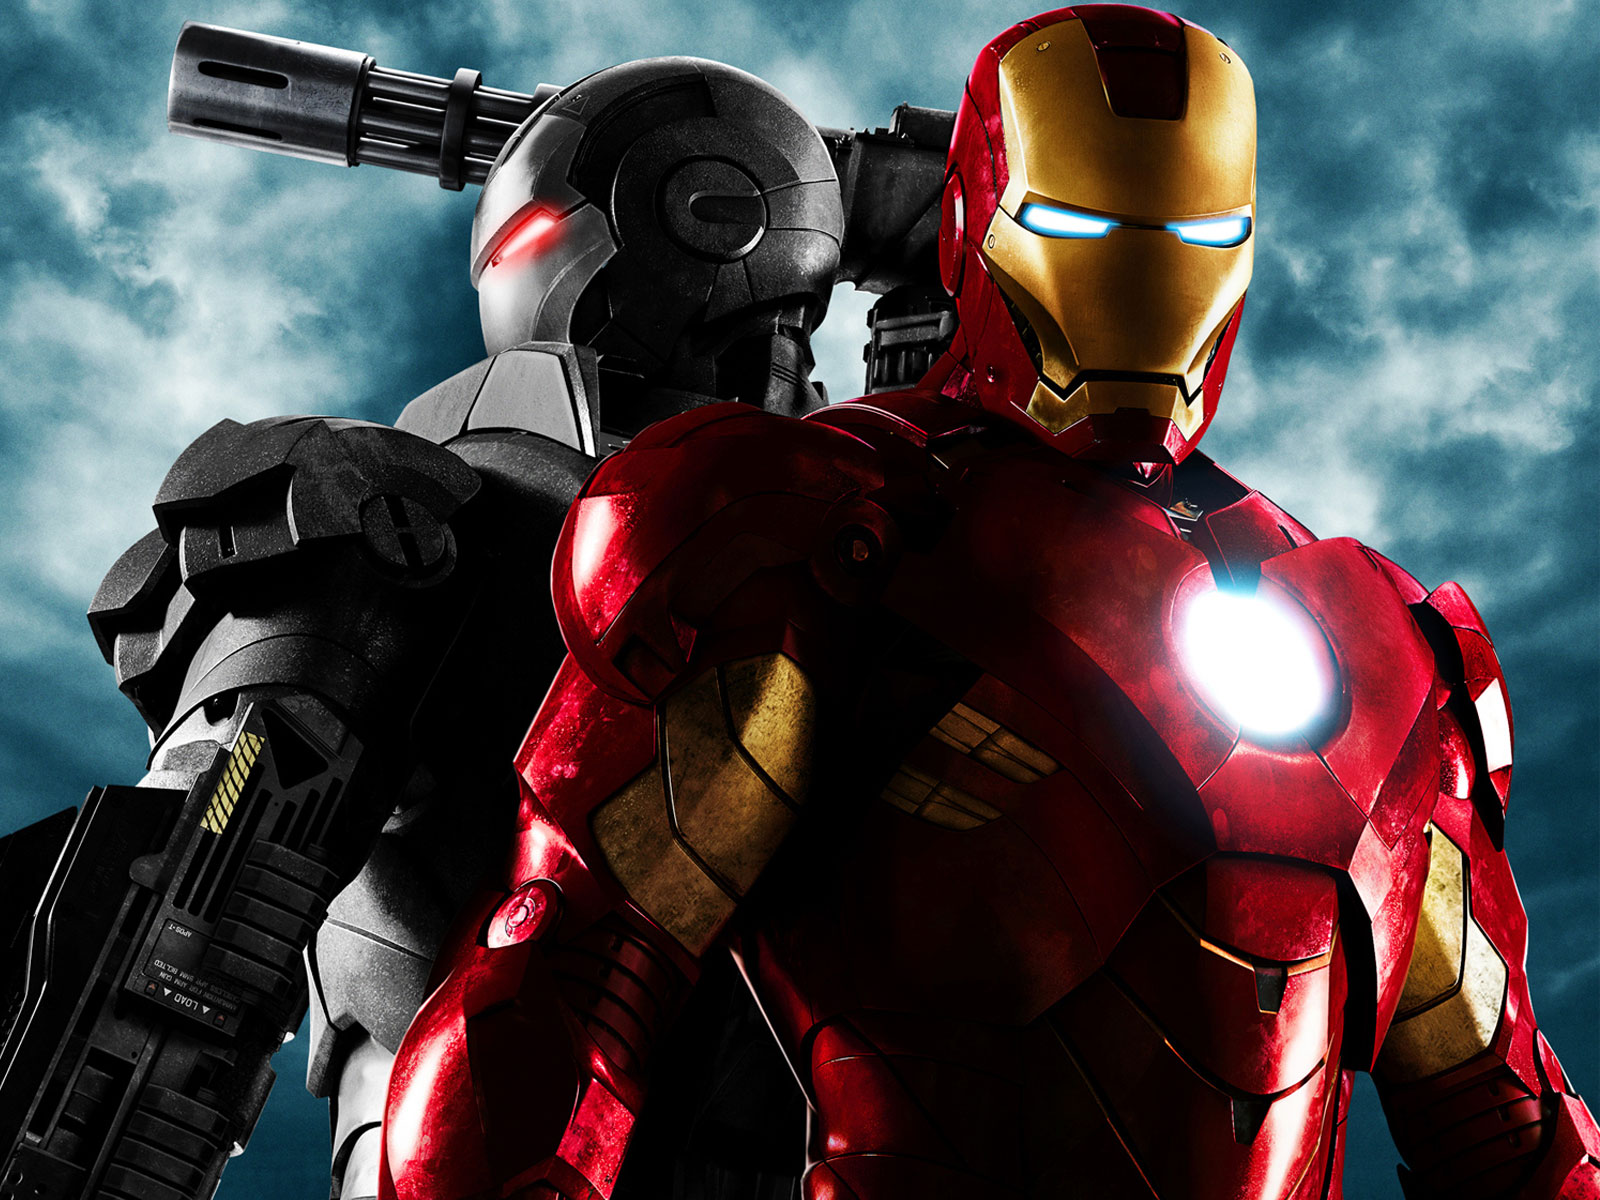 HD Wallpapers Of Iron Man